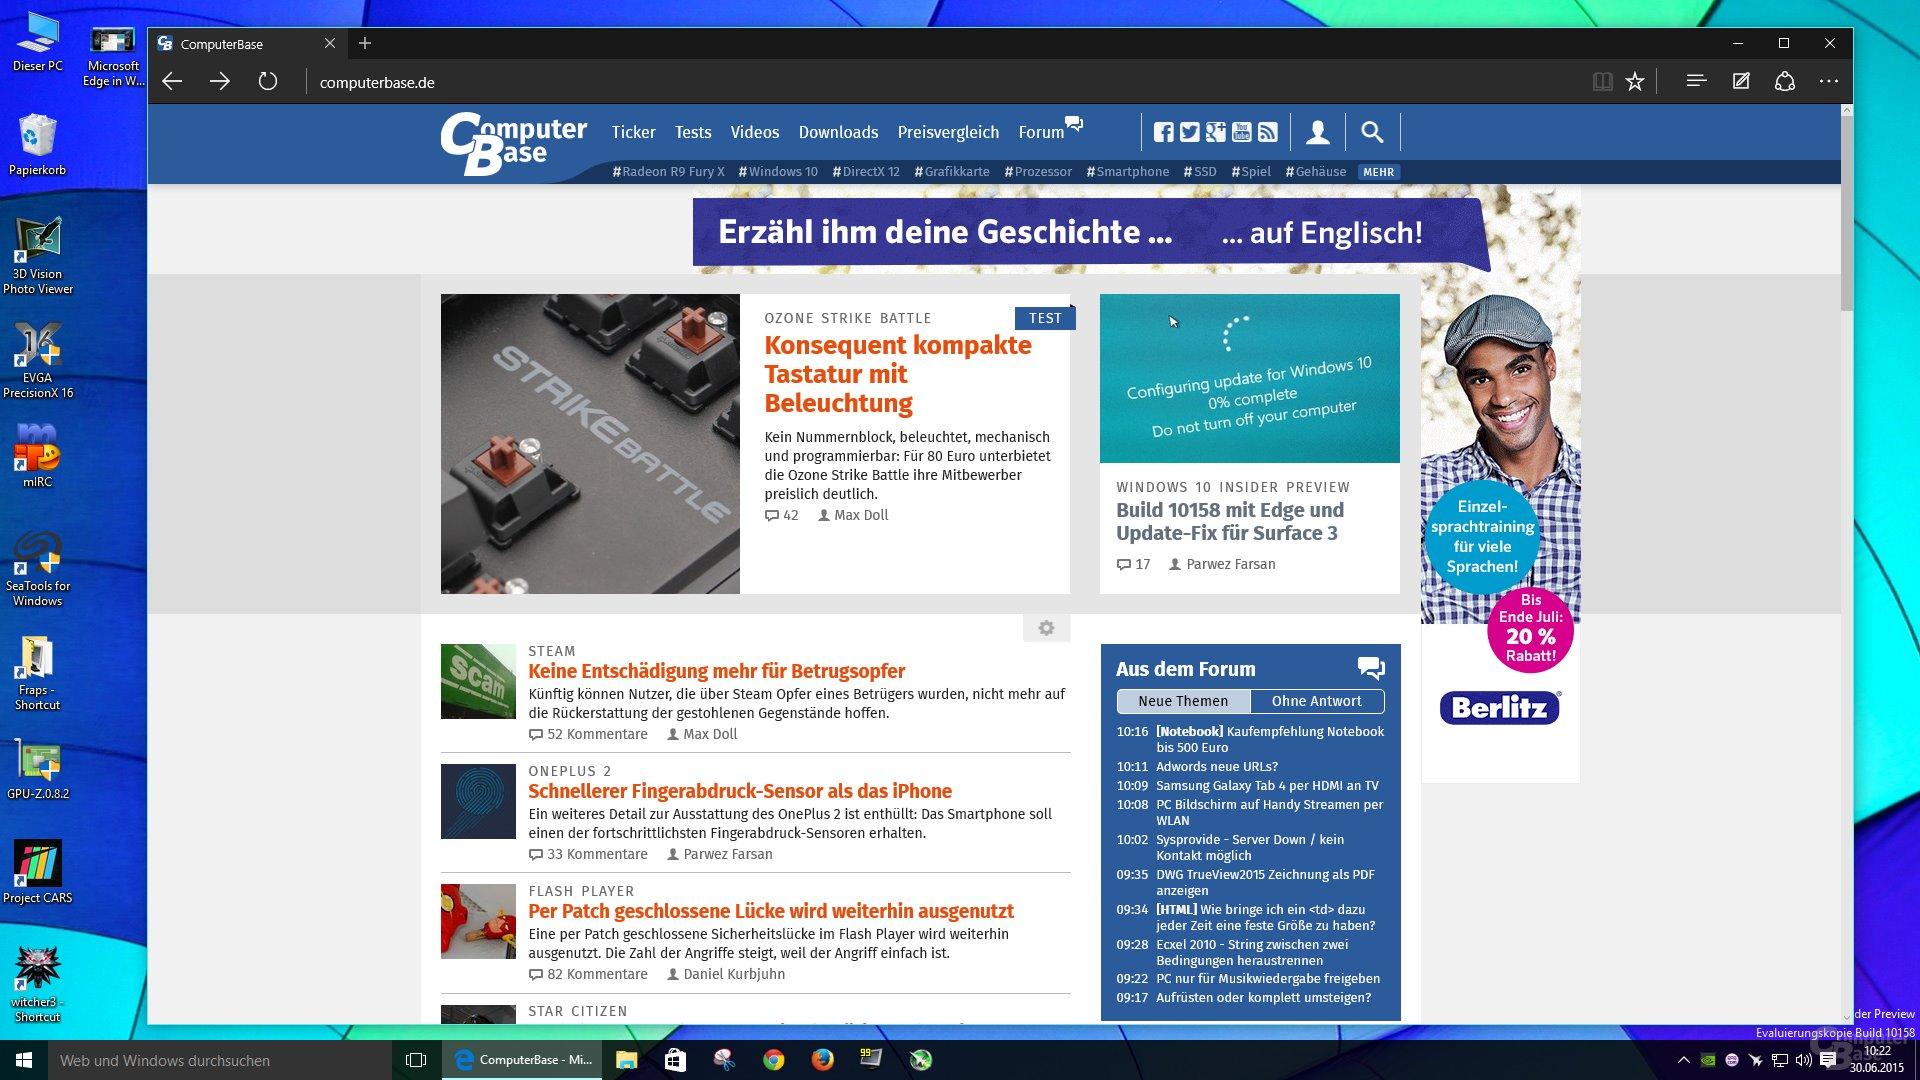 Microsoft Edge mit dunklem Theme in Windows 10 Build 10158